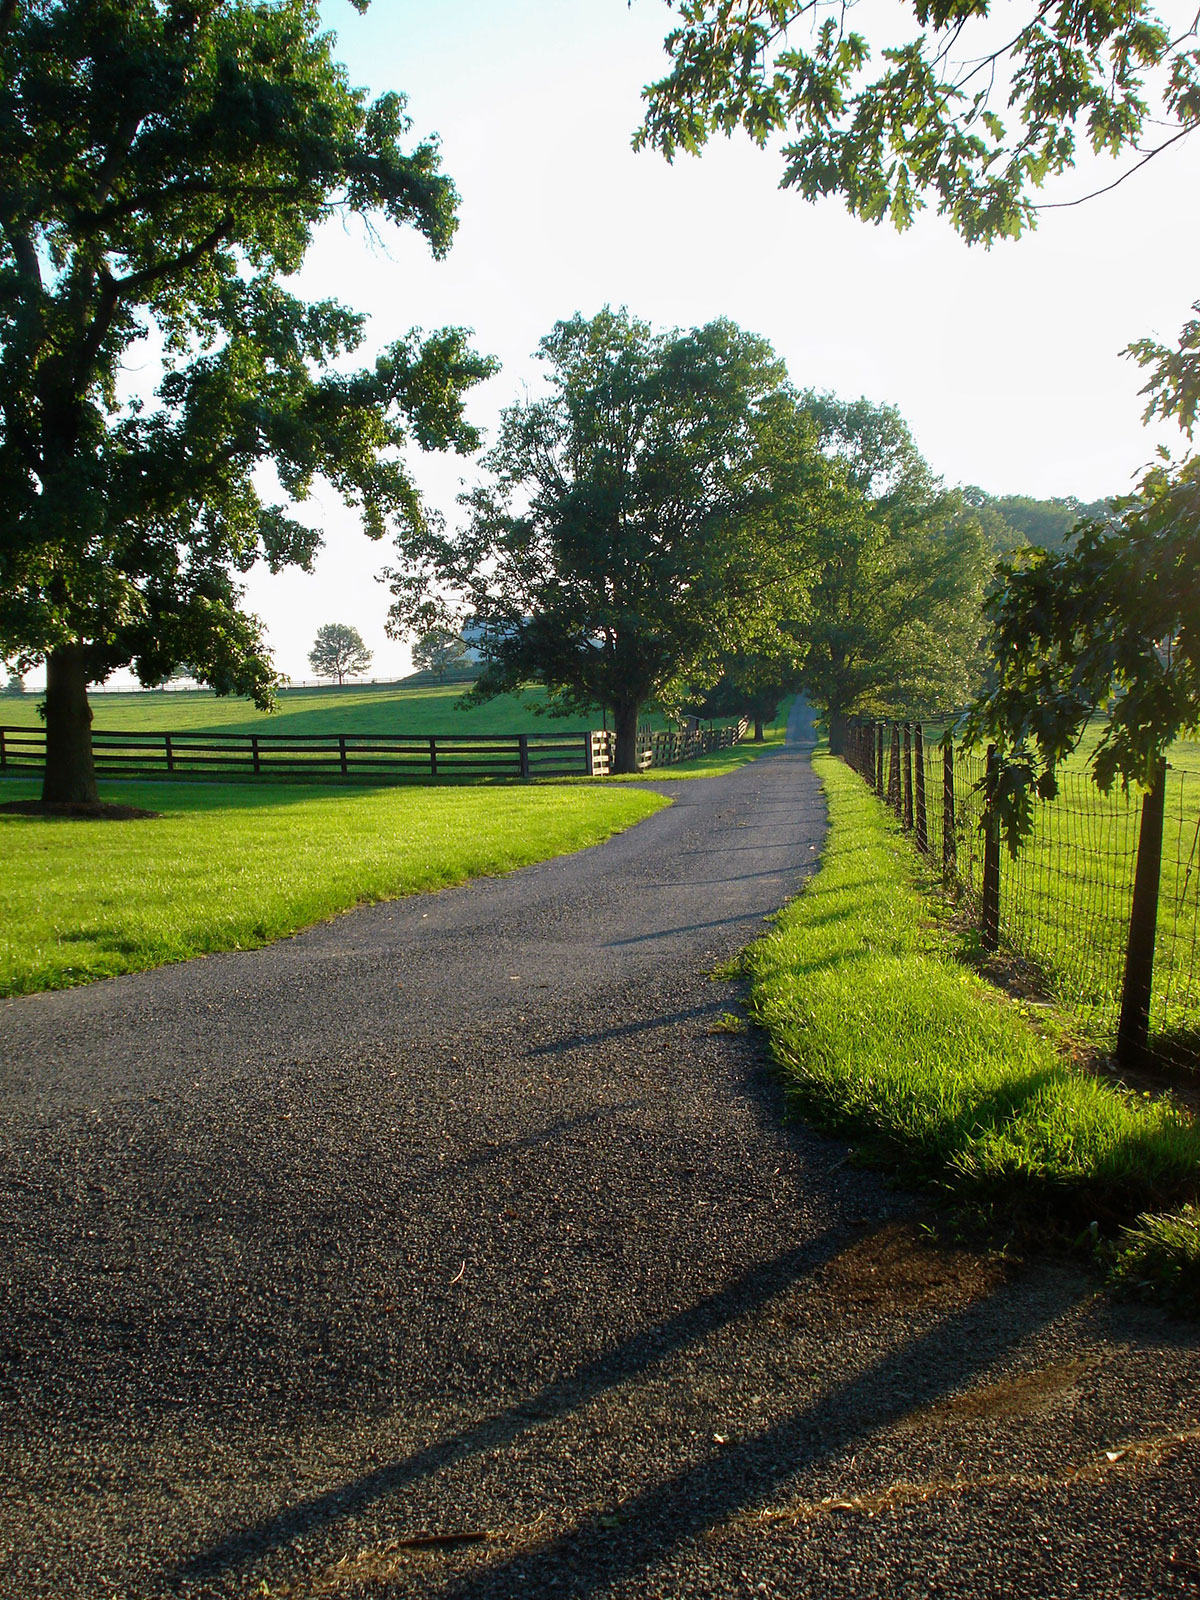 Pathway in Lancaster County area